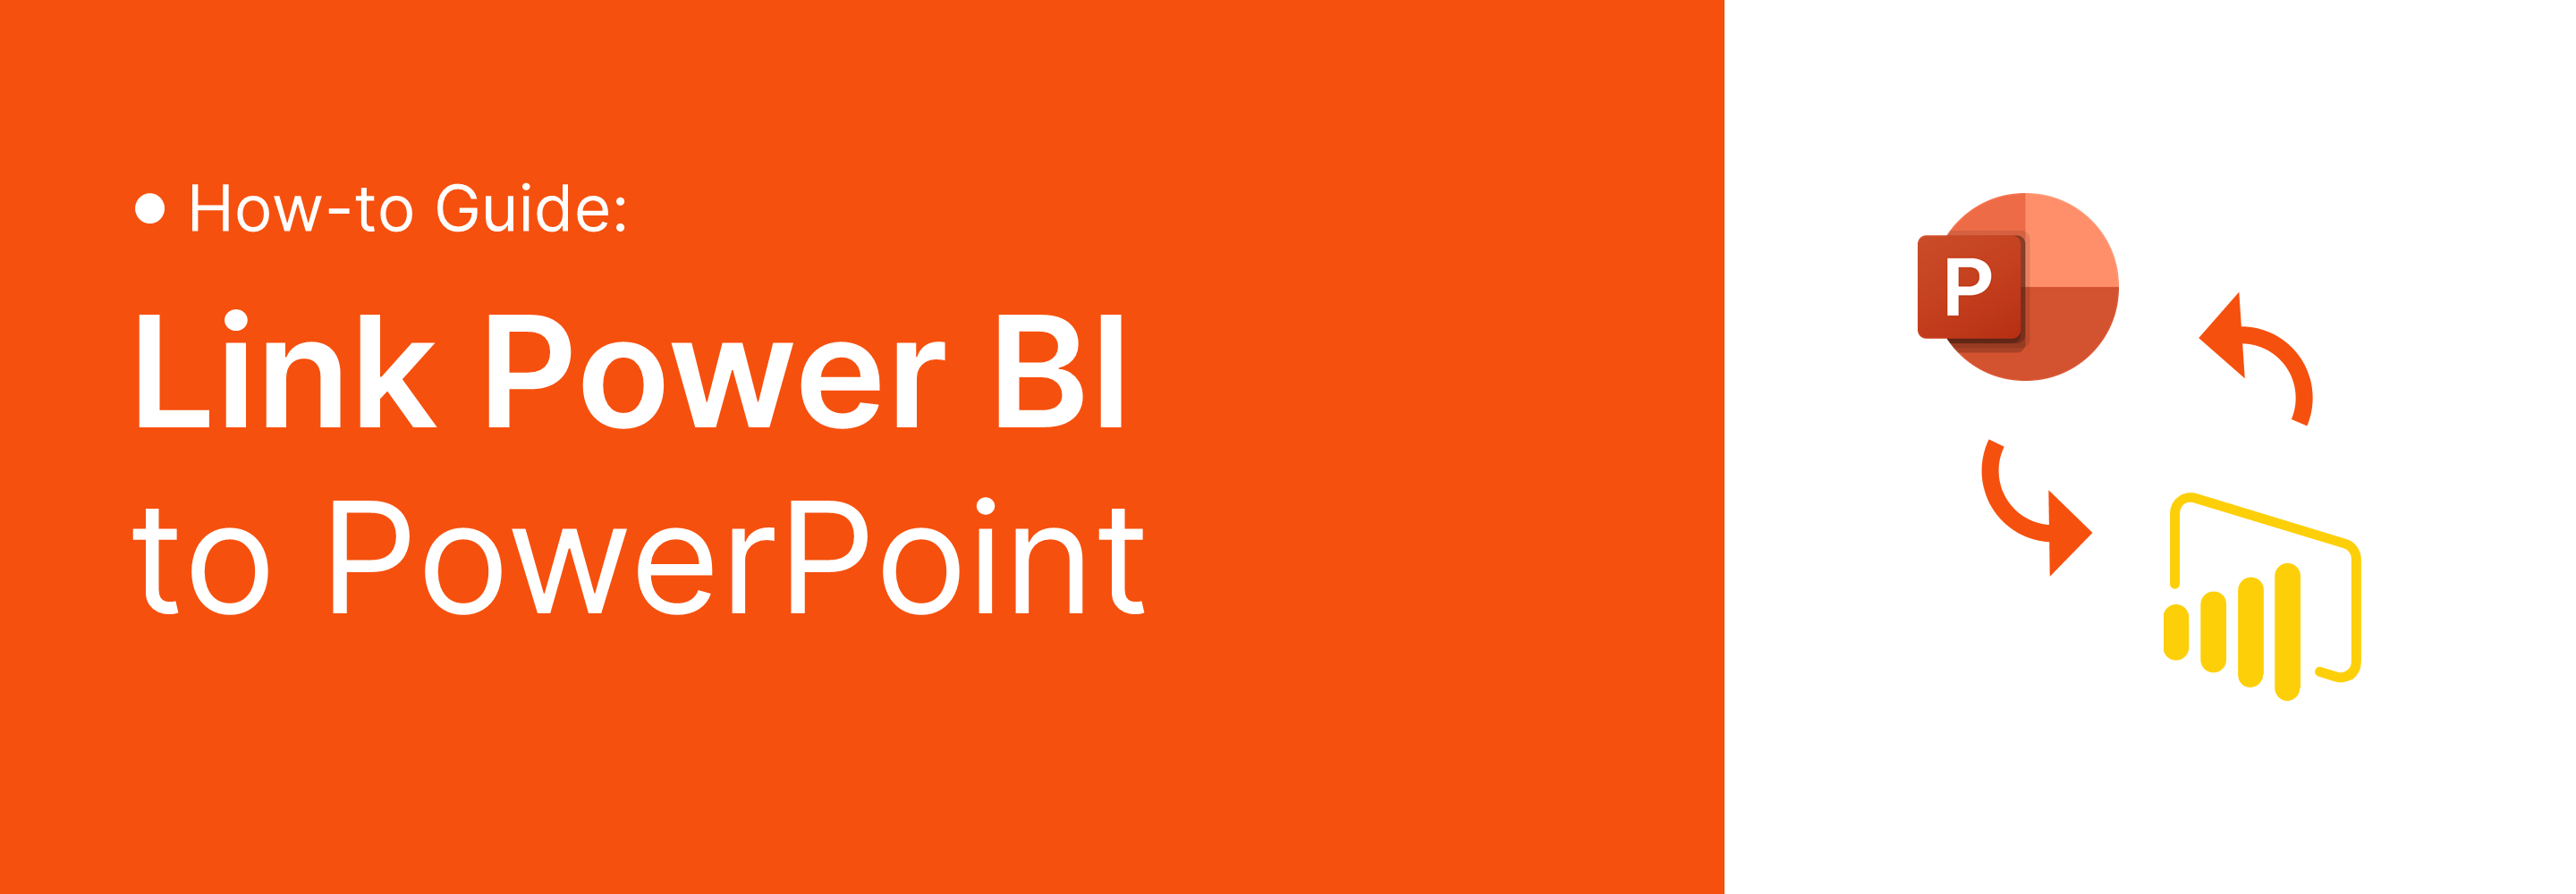 How to link Power BI to PowerPoint